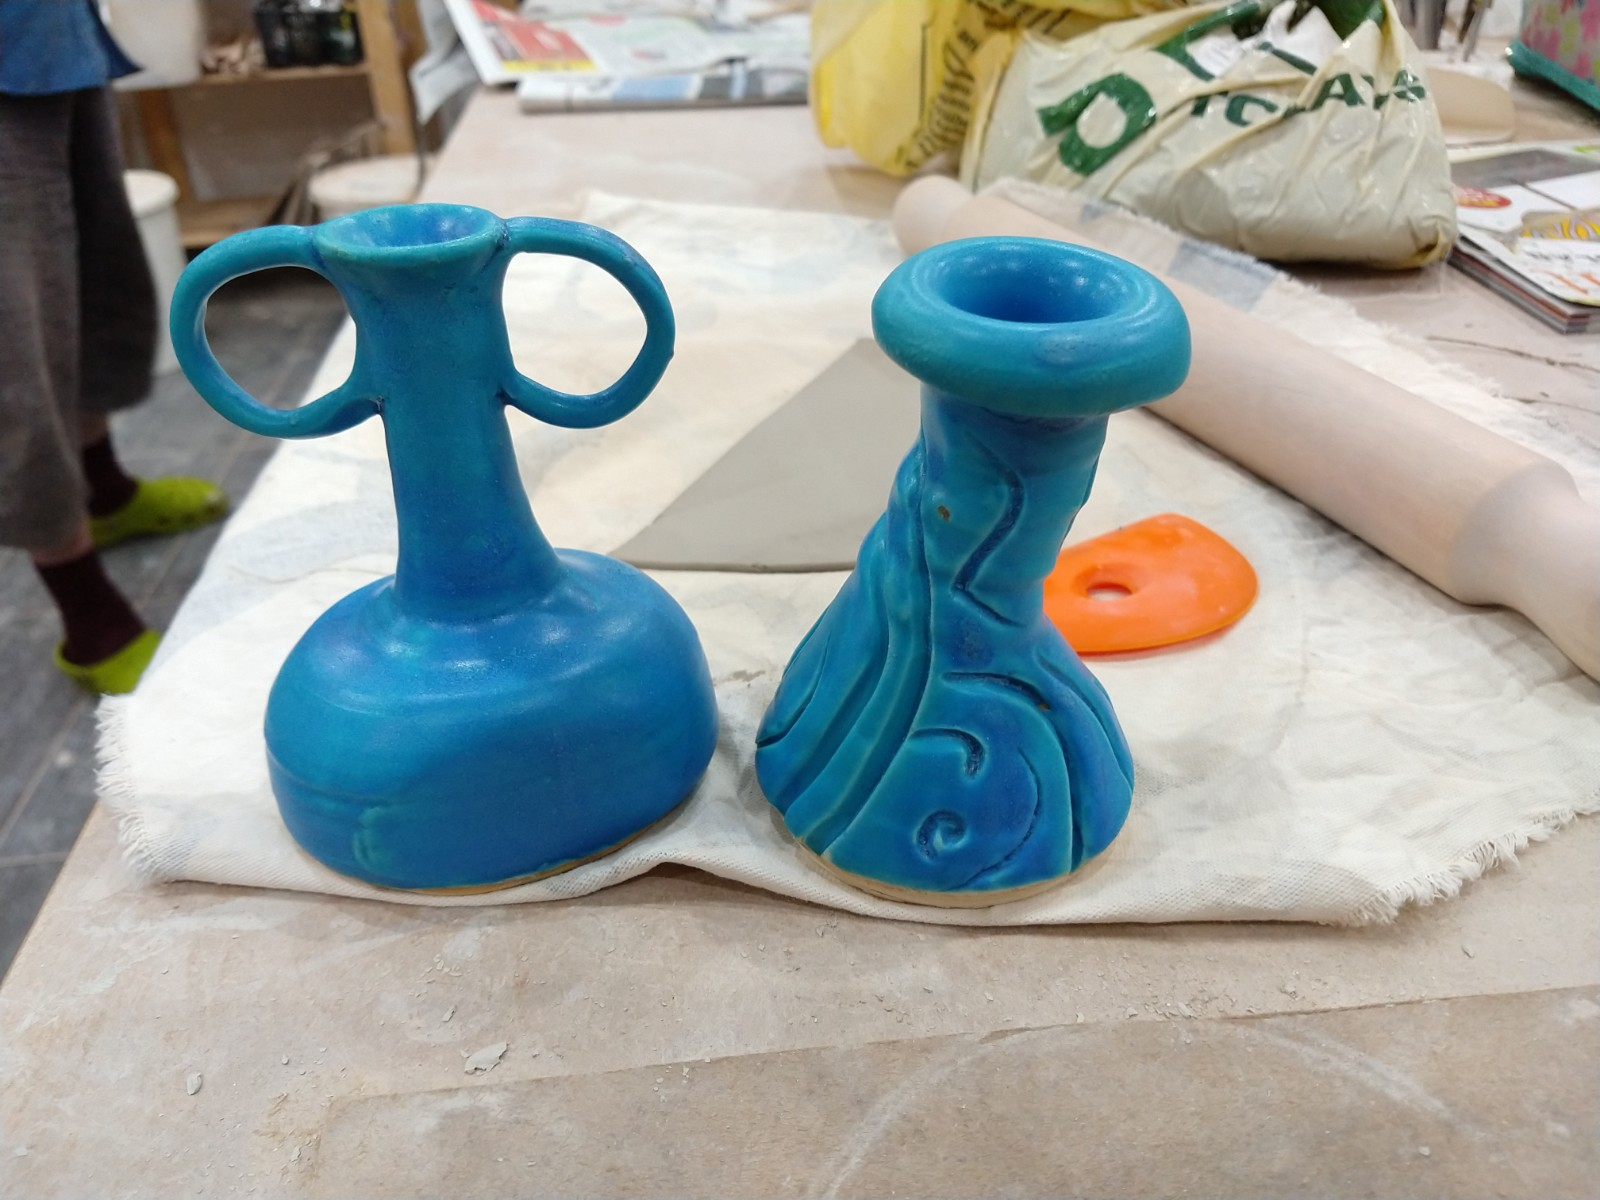 Turquoise vessels